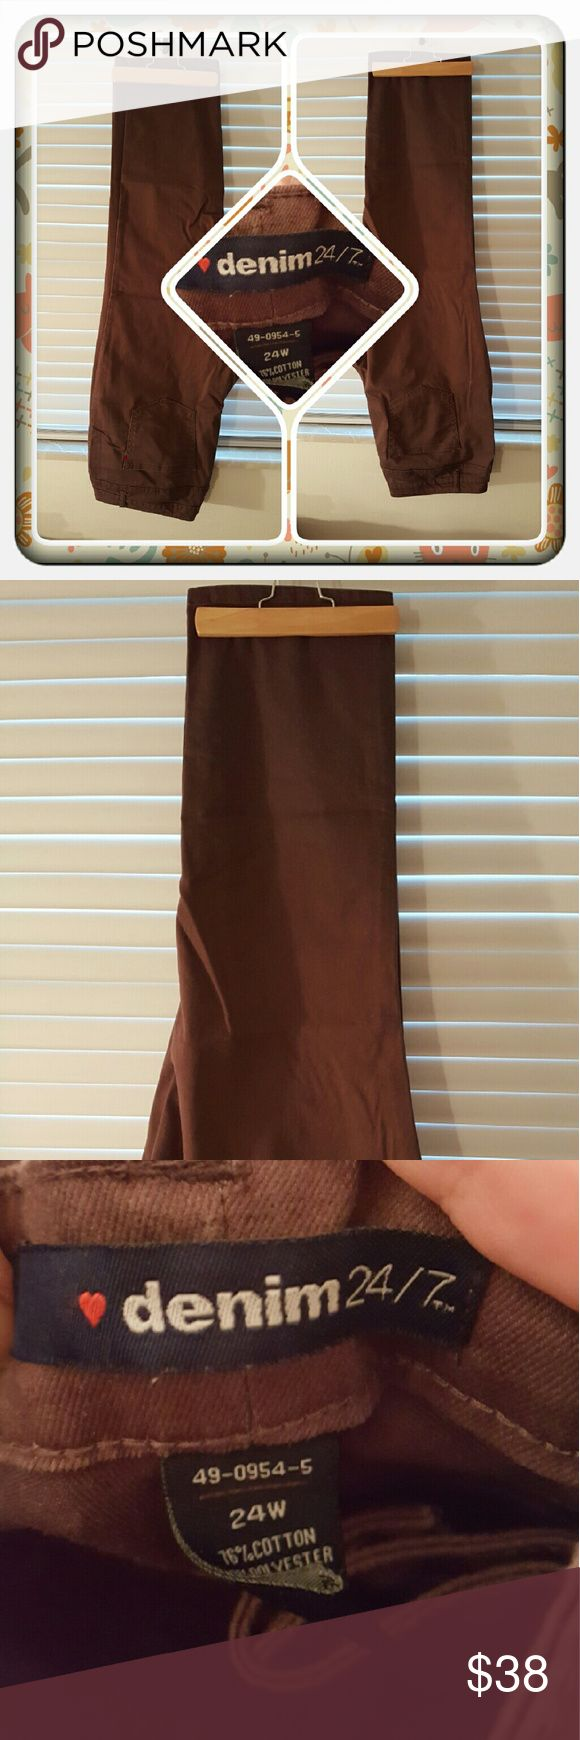 ❤ Woman's Brown Jeans Size 24W ❤ Woman's Chocolate Brown Straight Leg Jeans Size 24W From Woman Within. These Have Been Worn & Washed But No Damage I'm Aware Of Very Comfy & Stylish 🚫 PAYPAL 🚫 TRADES 🚫 OFFERS PRICED LOW TO SELL ❤ Woman Within Jeans Straight Leg